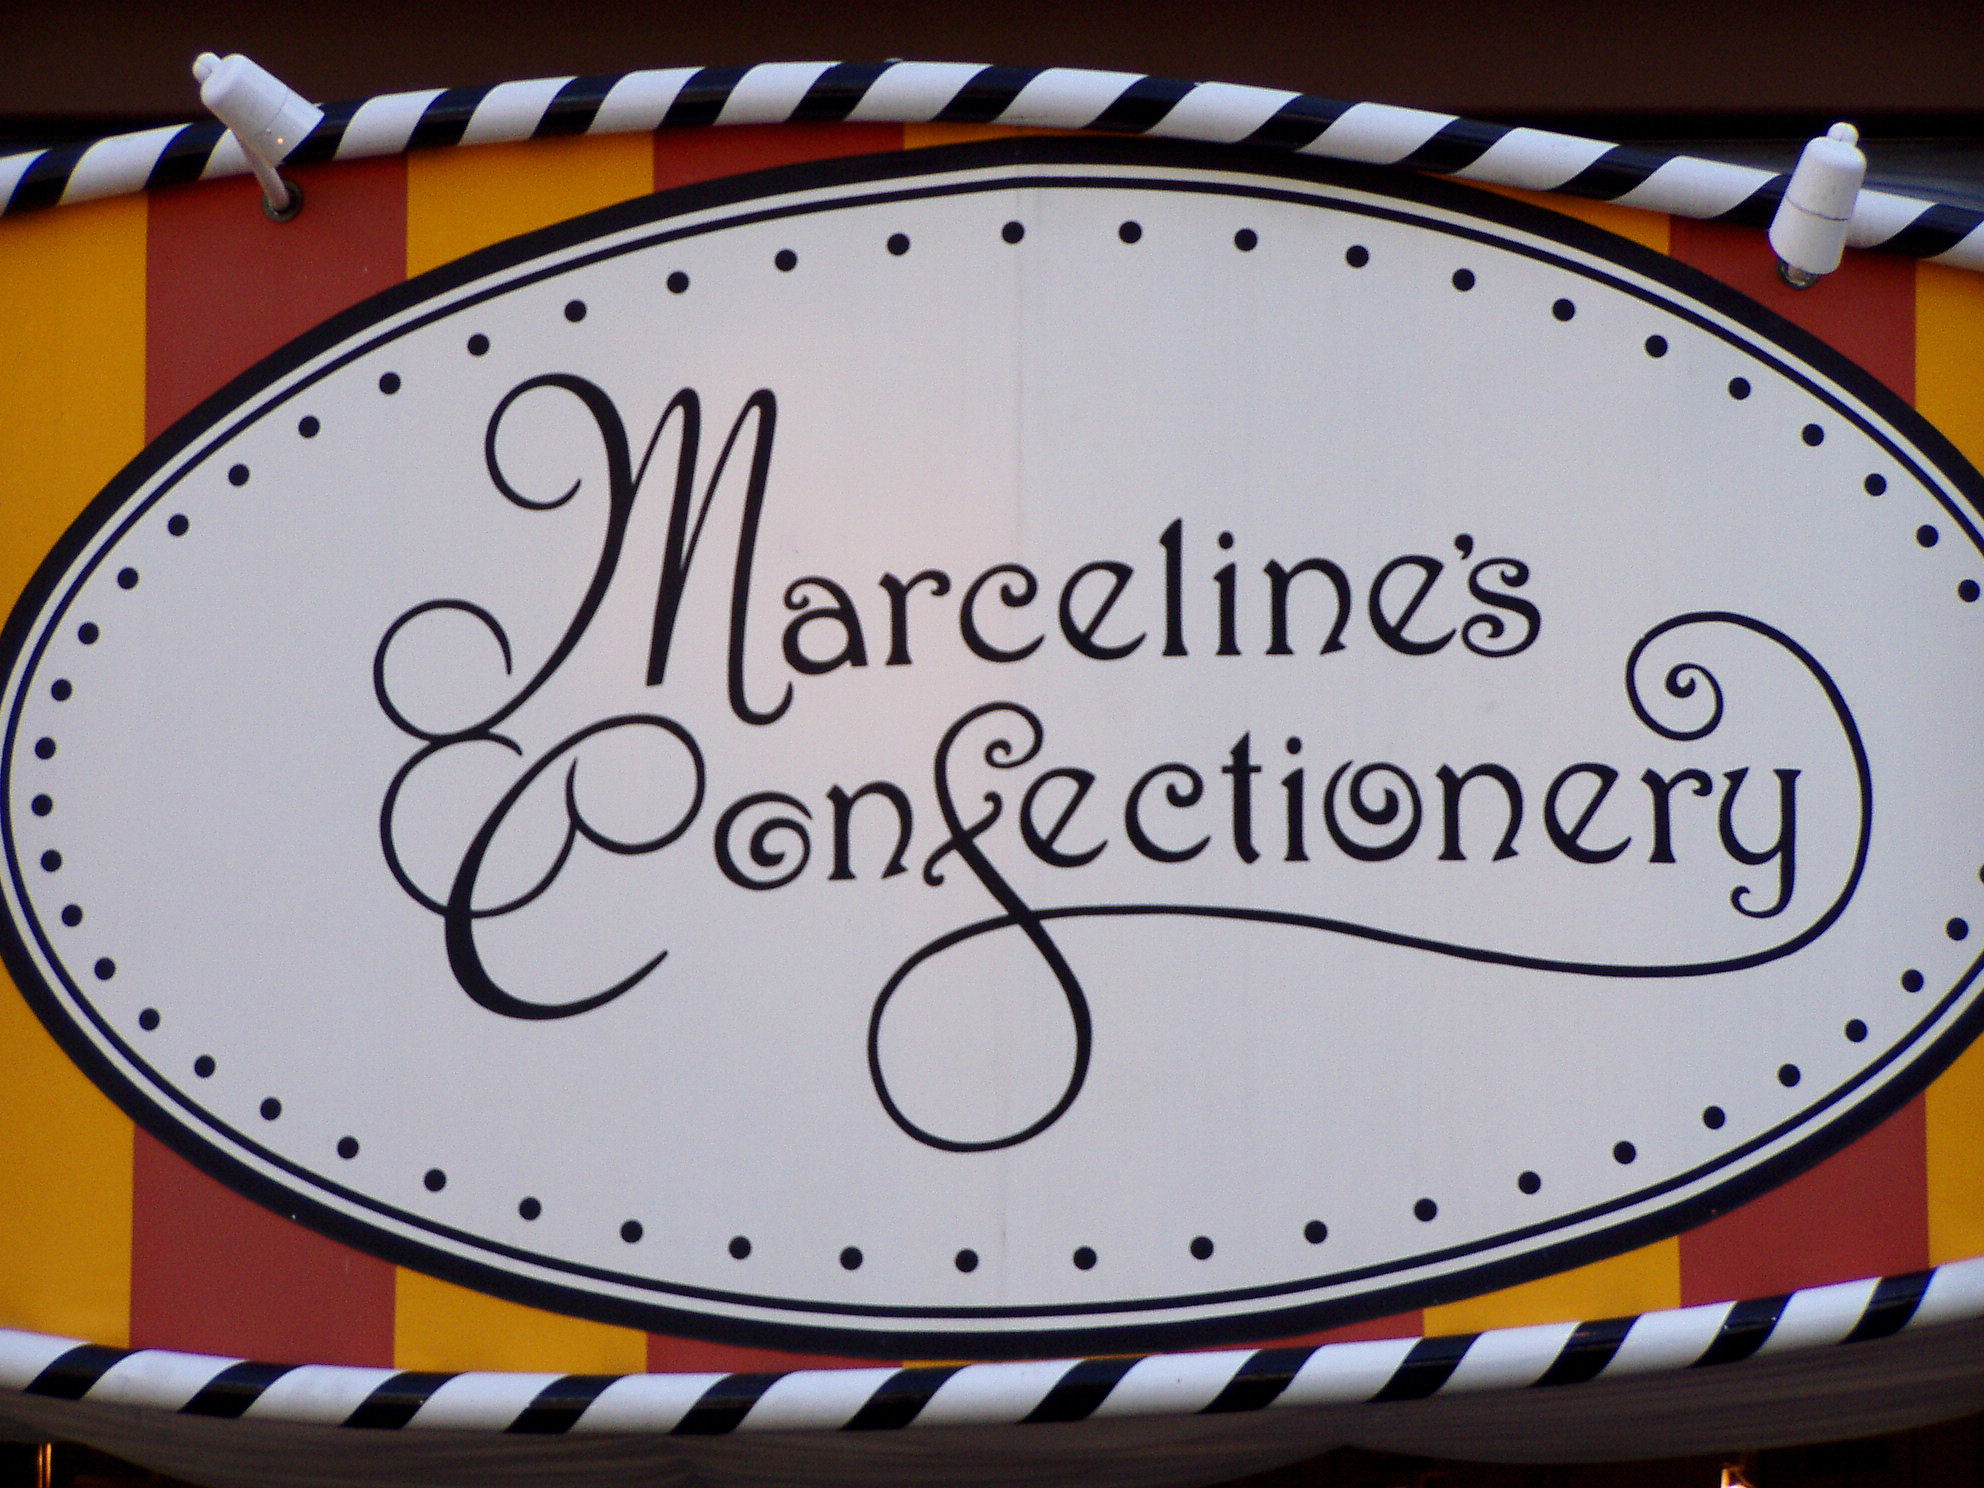 A Hidden Mickey in the logo for Marceline's Confectionery at Downtown Disney at The Disneyland Resort.